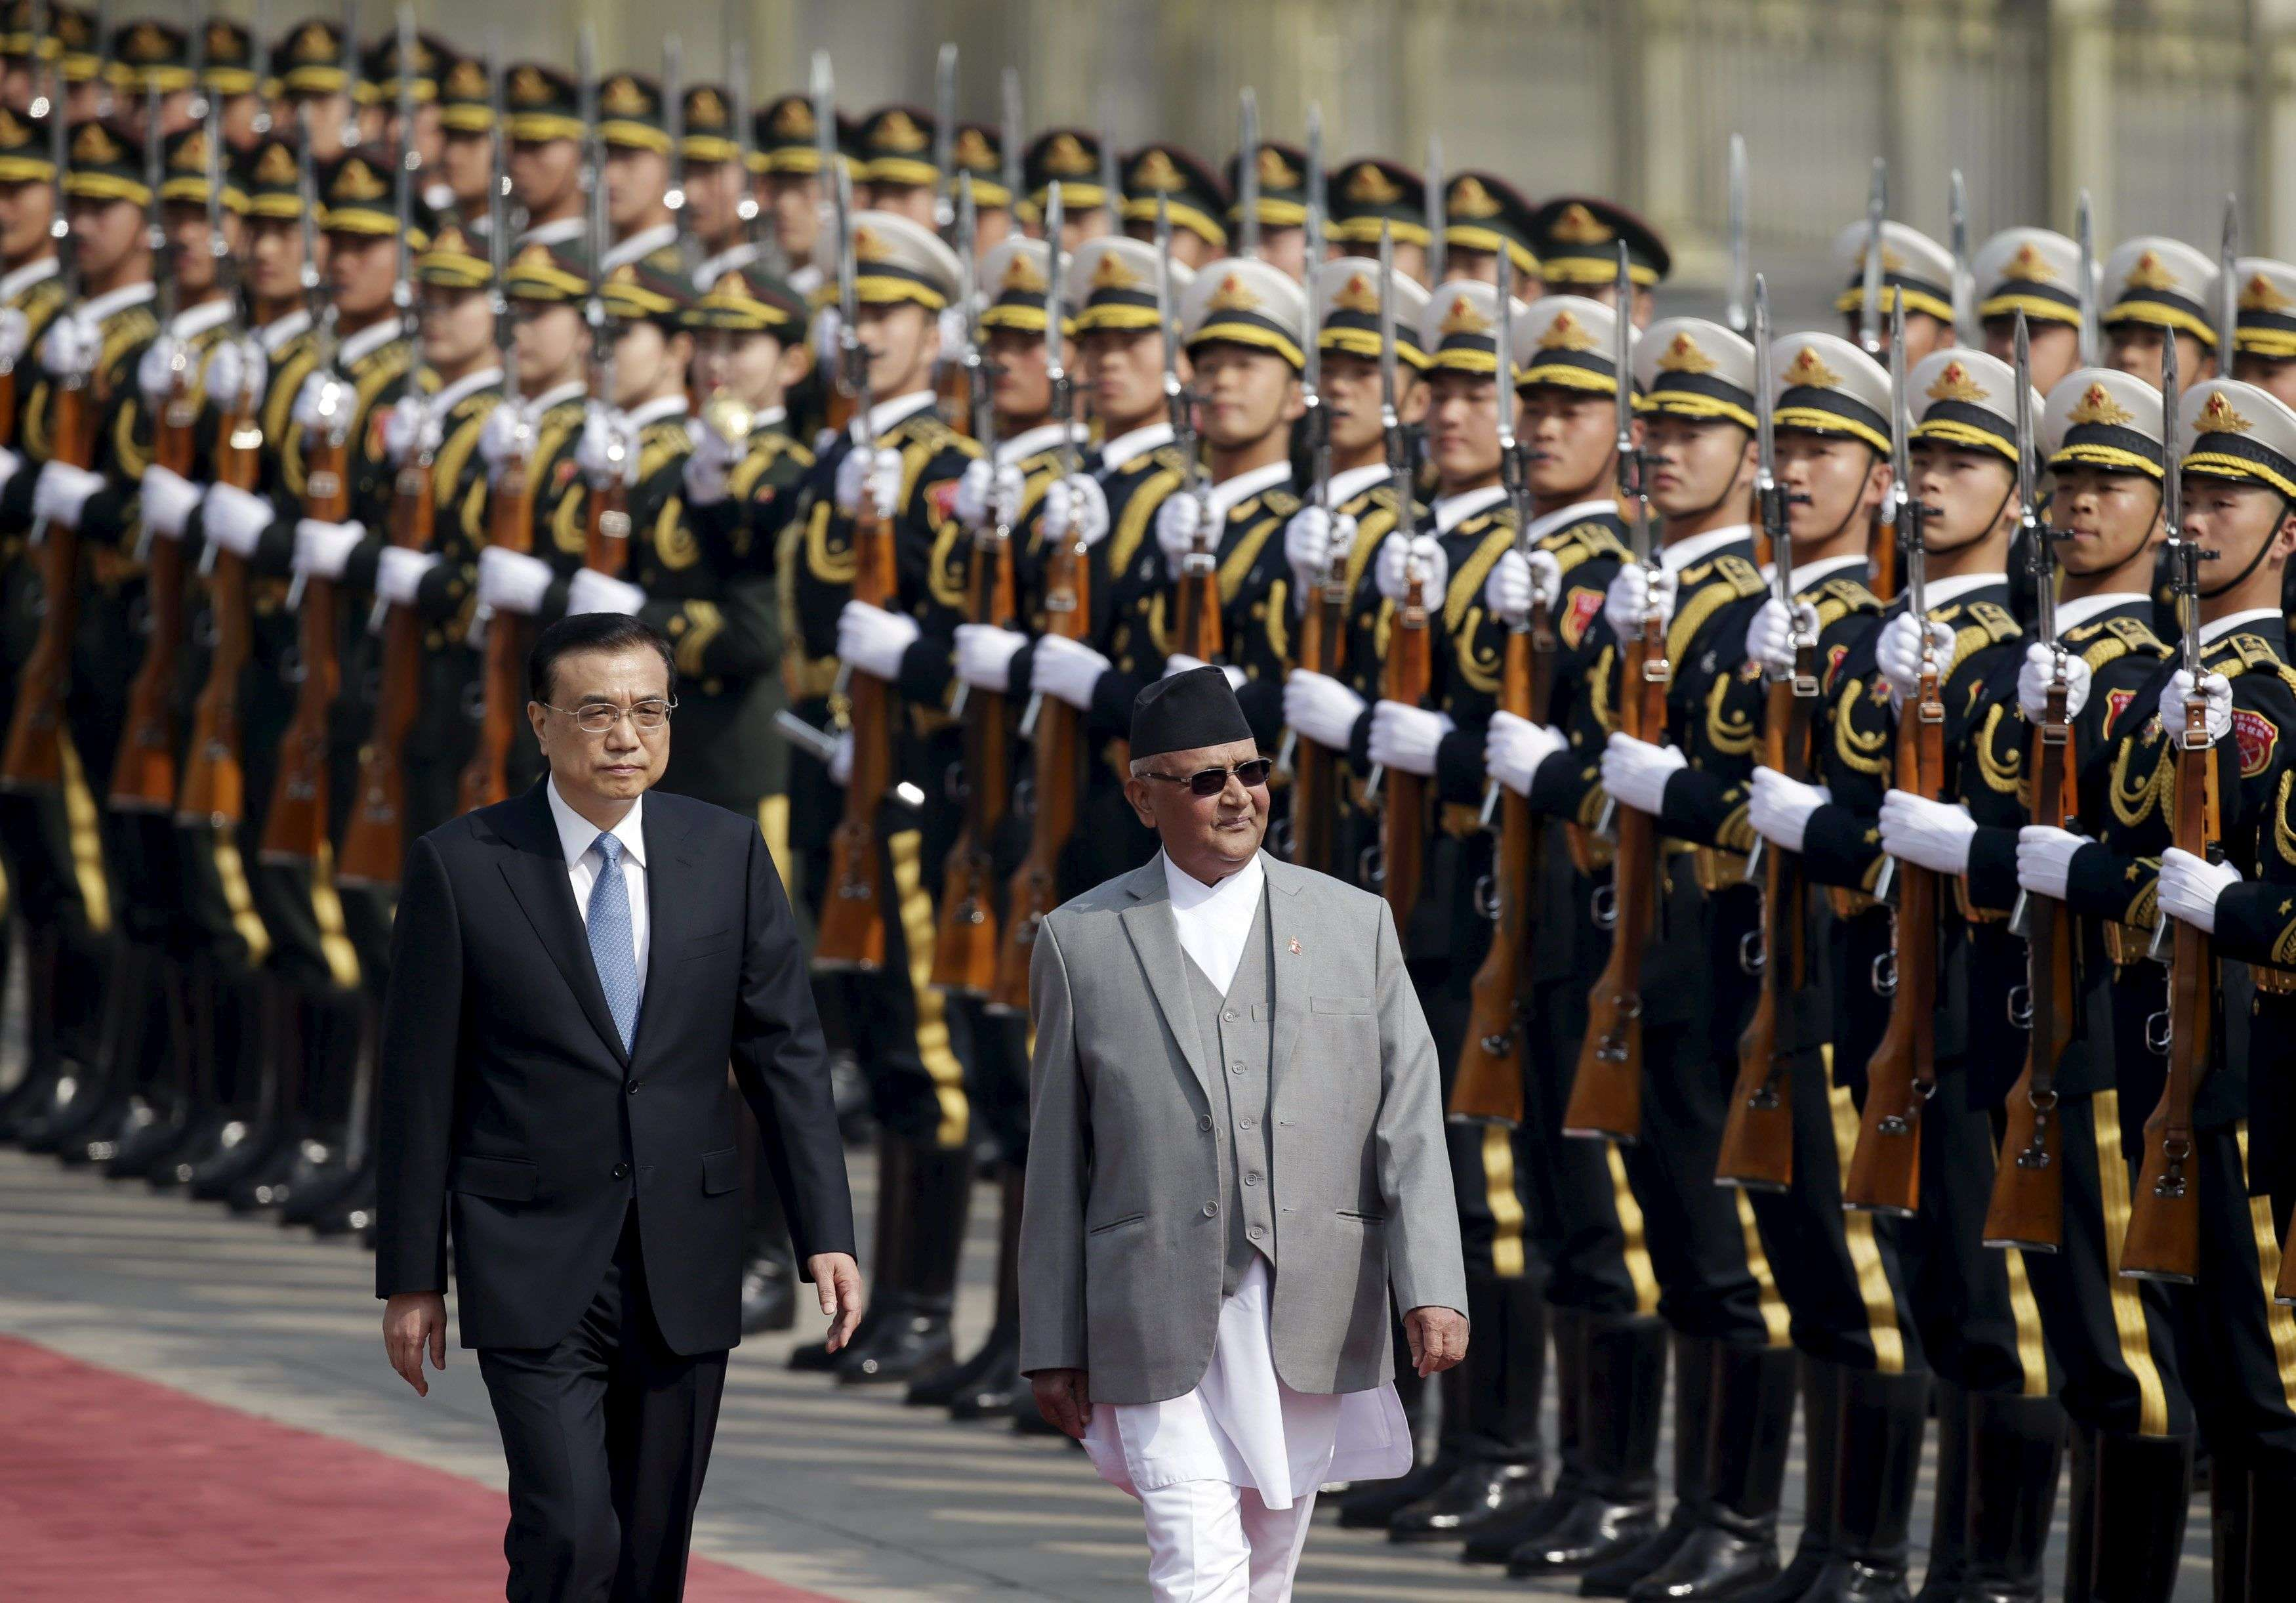 Nepal's Prime Minister Khadga Prasad Sharma Oli and China's Premier Li Keqiang (L) review honour guards during a welcoming ceremony at the Great Hall of the People in Beijing, China March 21, 2016. REUTERS/Jason Lee